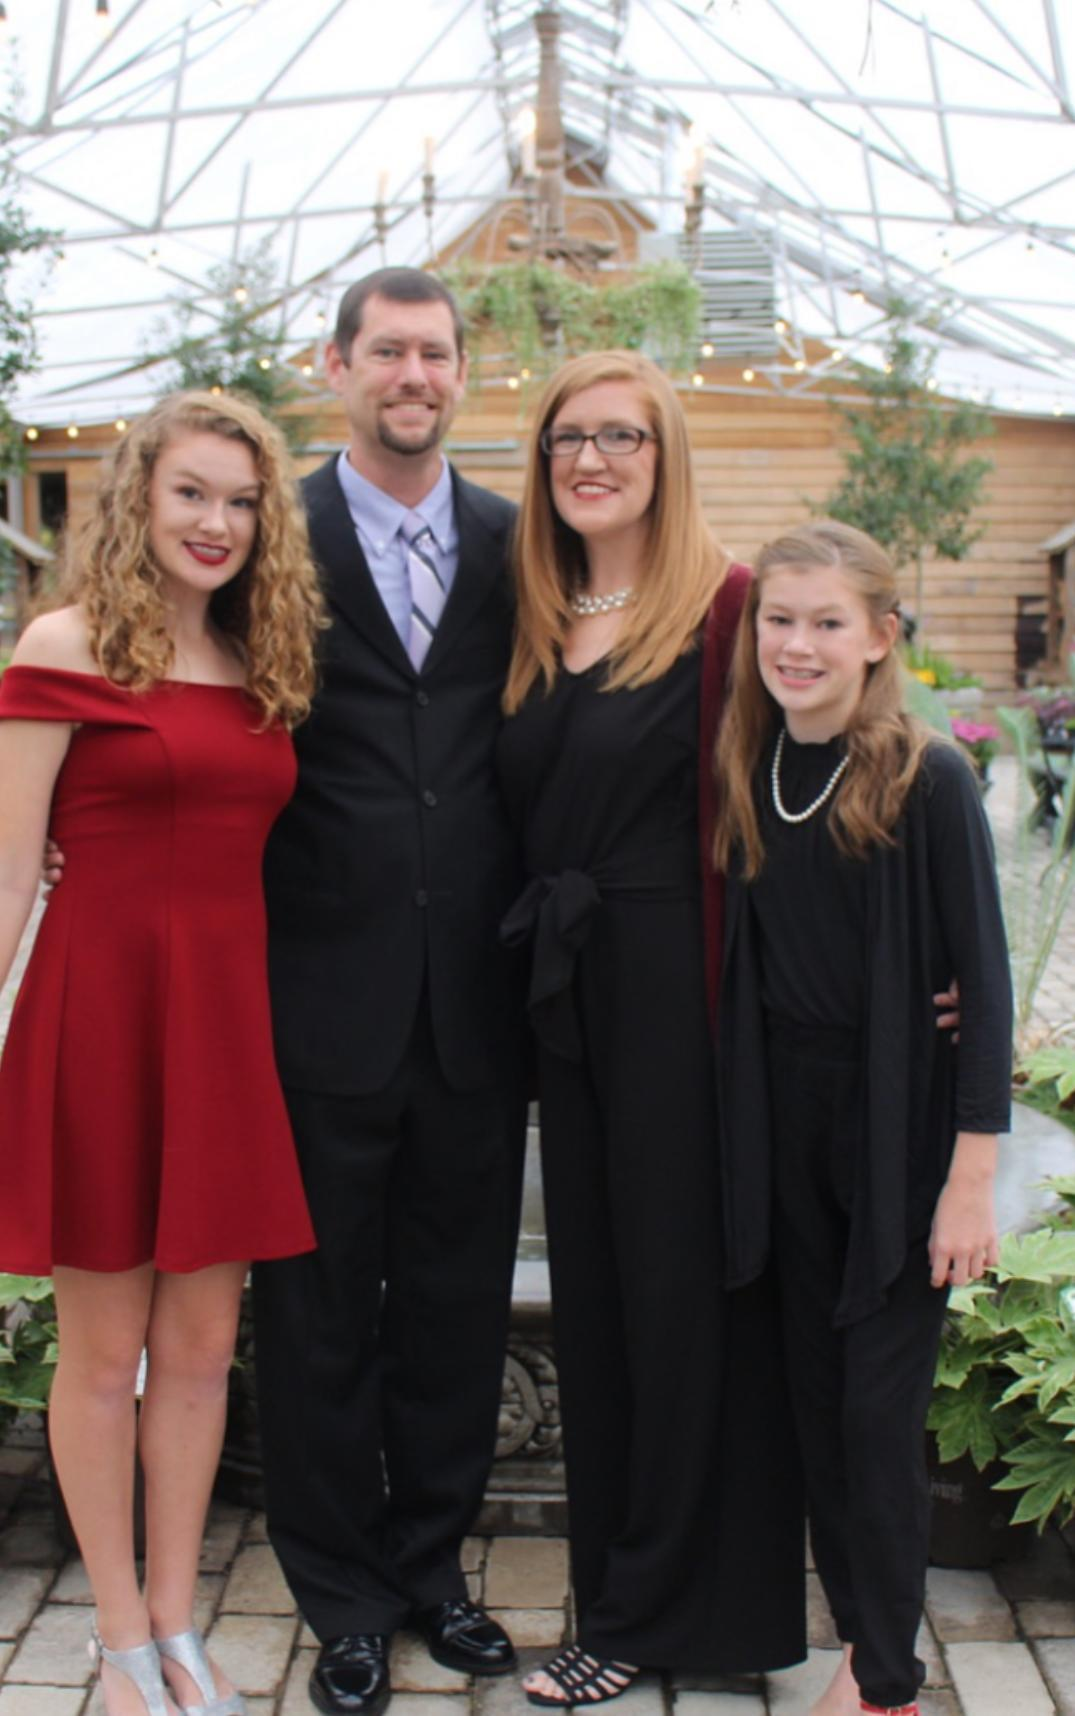 Mrs. Emily and her family